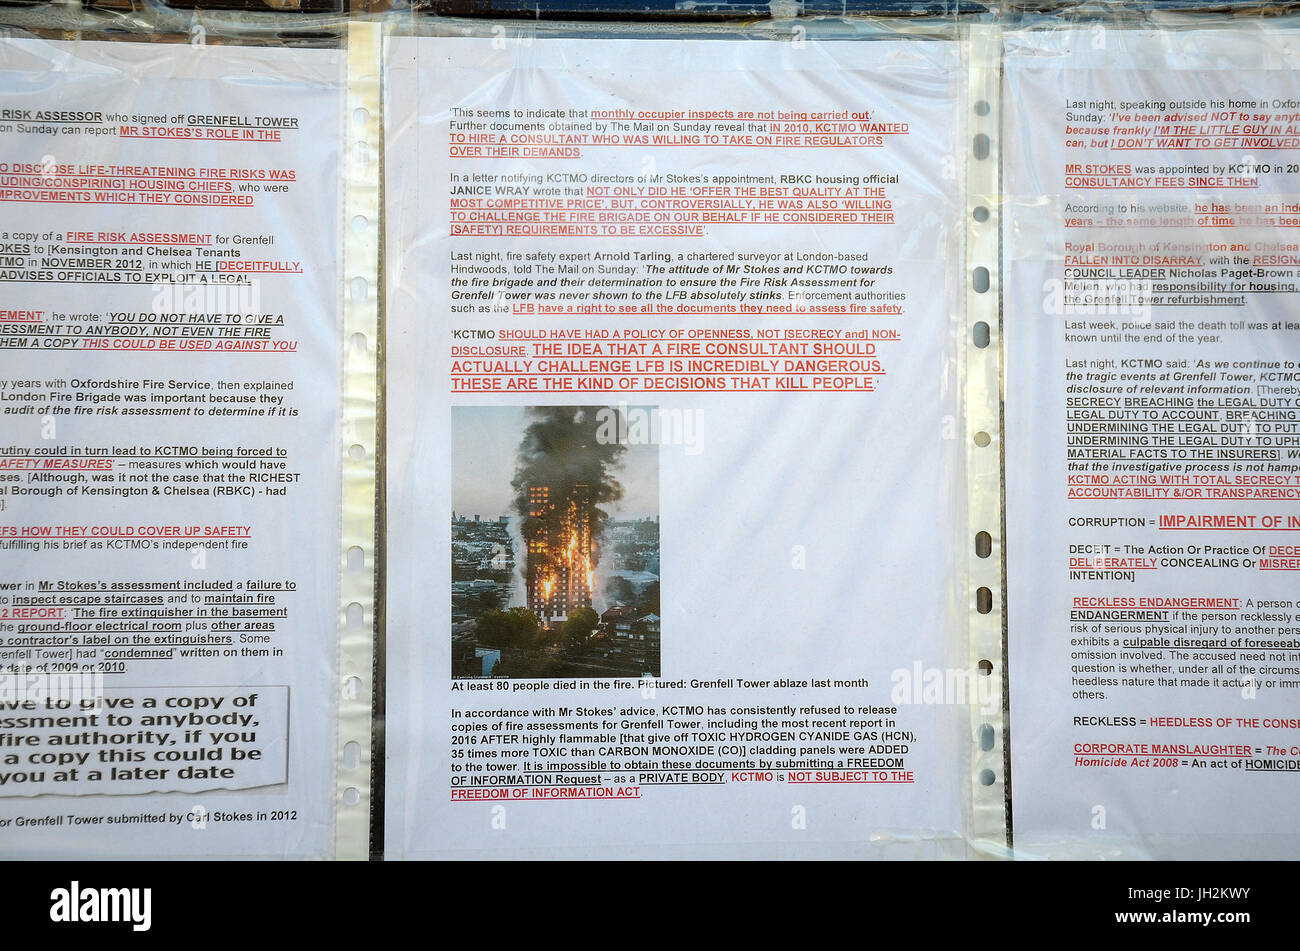 London, UK, 12/07/2017 Flowers, Tributes And Missing Person Posters Show  Signs Of Weather Deterioration But Remain Near Grenfell Tower One Month  After Fire ...  Missing Person Posters